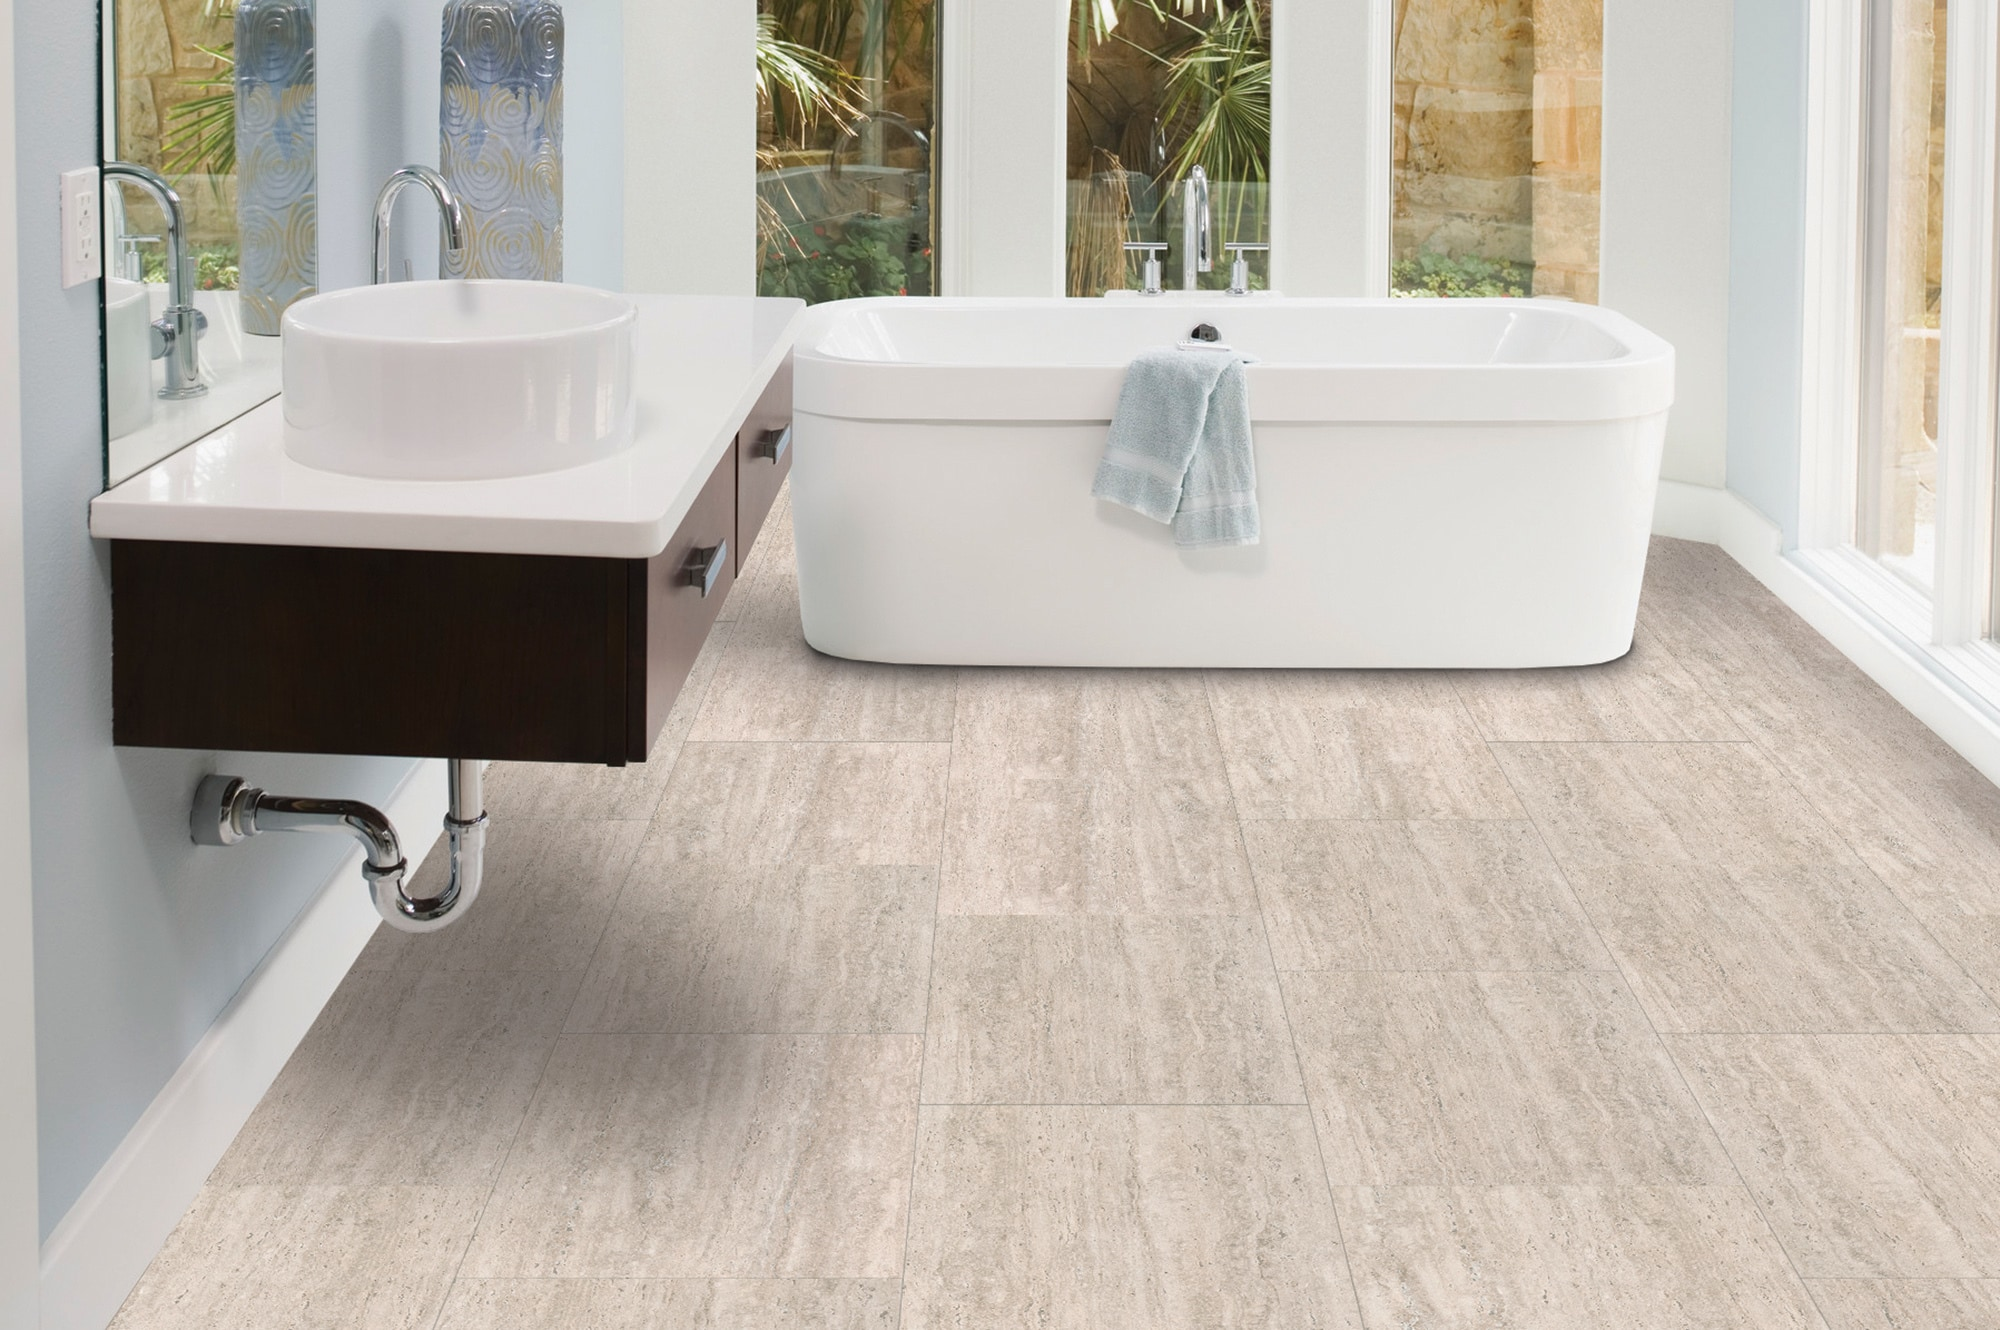 ULTRA CERAMIC / VINYL TILE | Toma Fine Floors